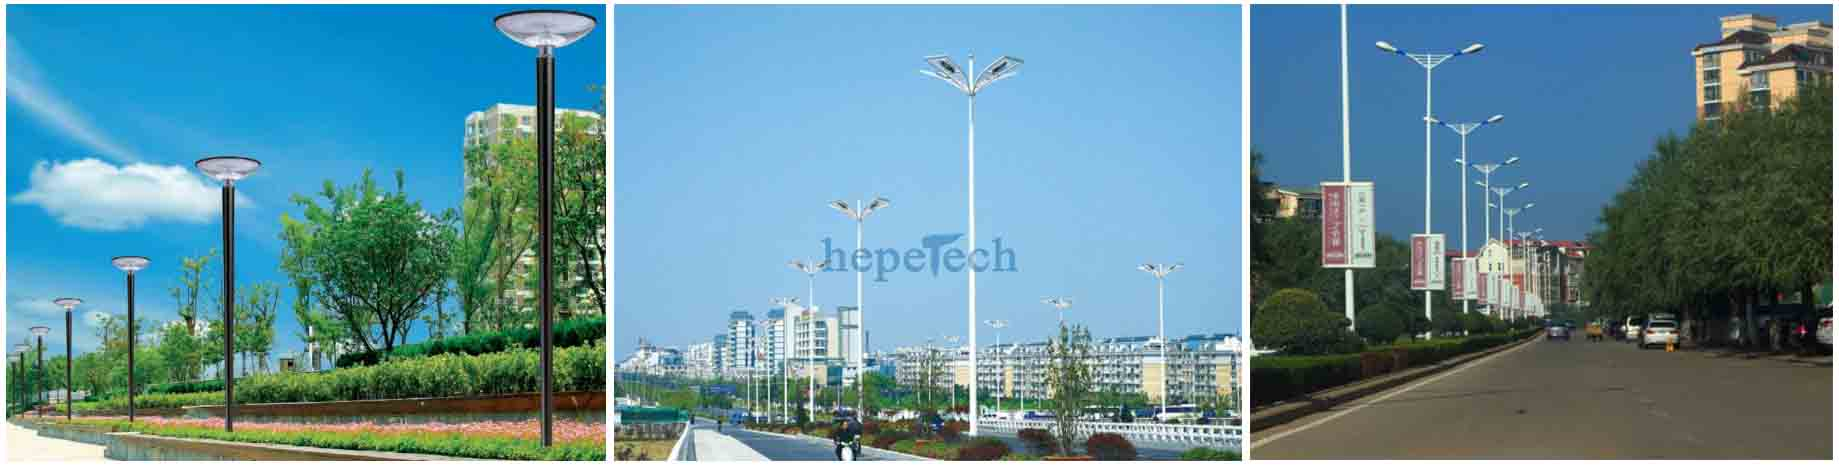 led outdoor lighting street lamps